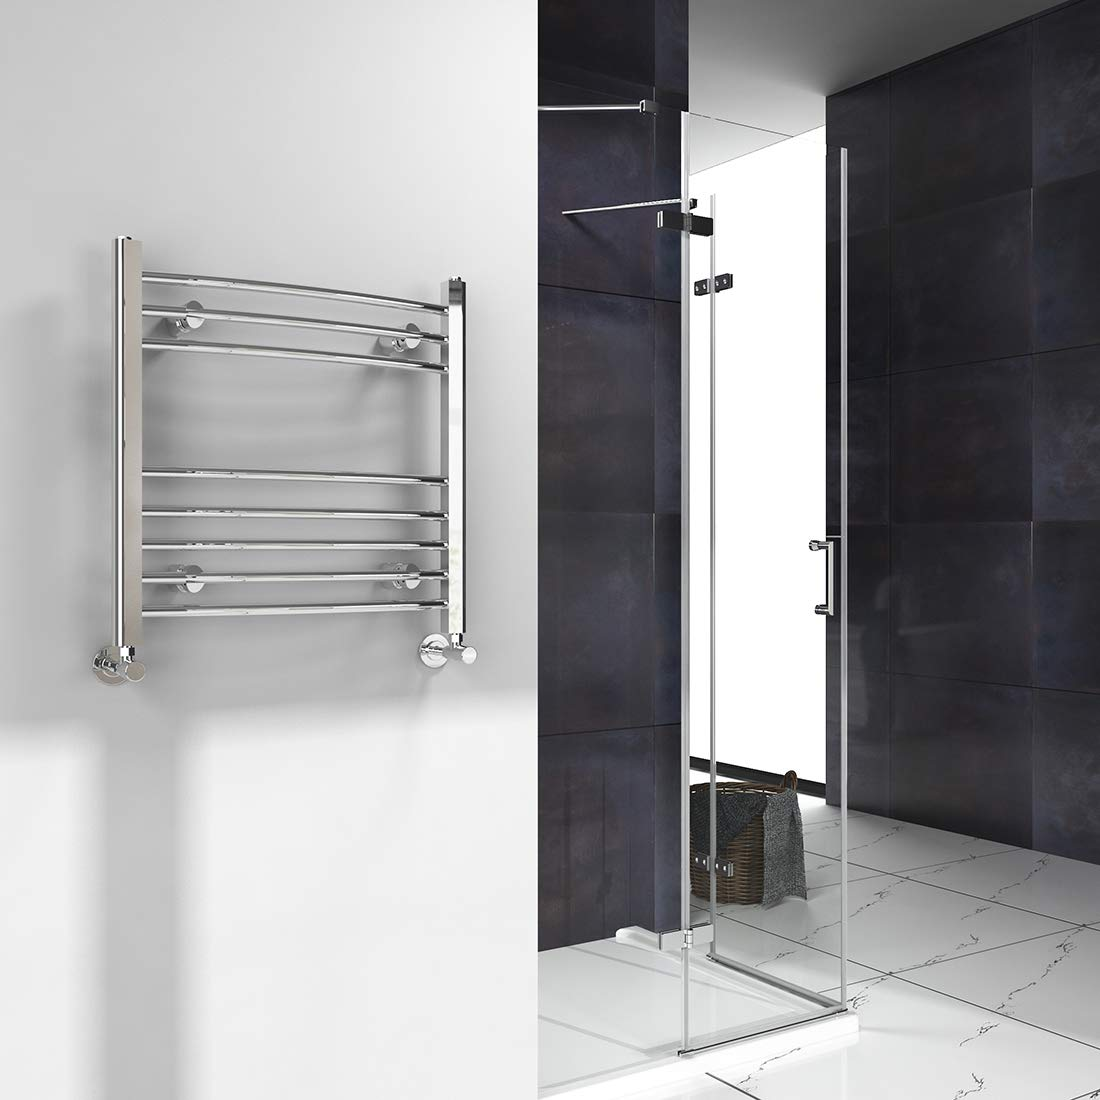 / Curved Heated Towel Rail Bathroom Radiators 1600x400 mm Chrome Towel Radiator/ Heater